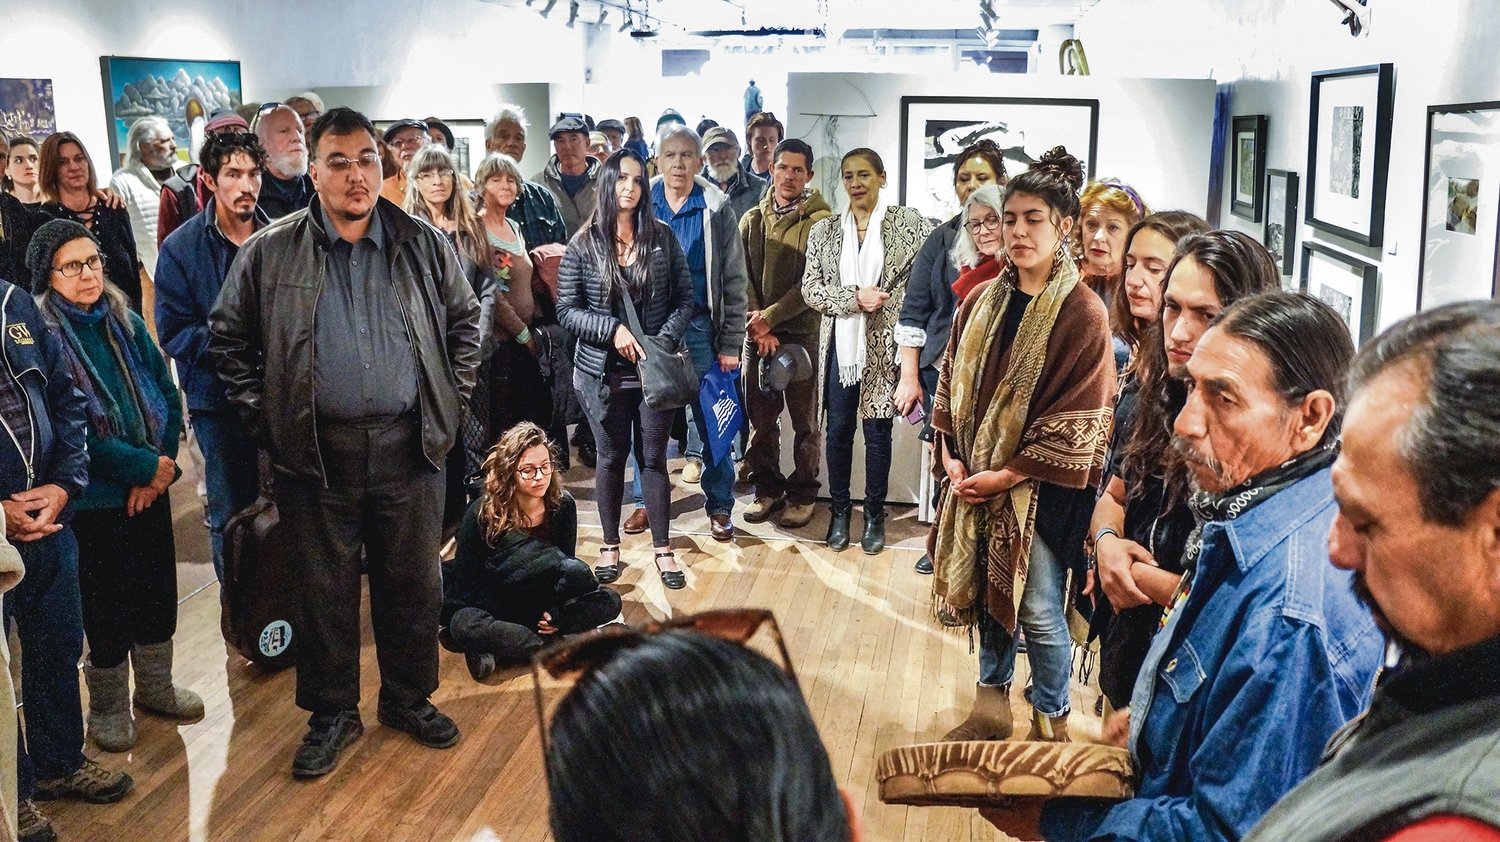 The reception on Saturday (April 13) held a rapt audience of supporters when a group of Native singers did a prayer song honoring the power of water. Photo by Rick Romancito/The Taos News